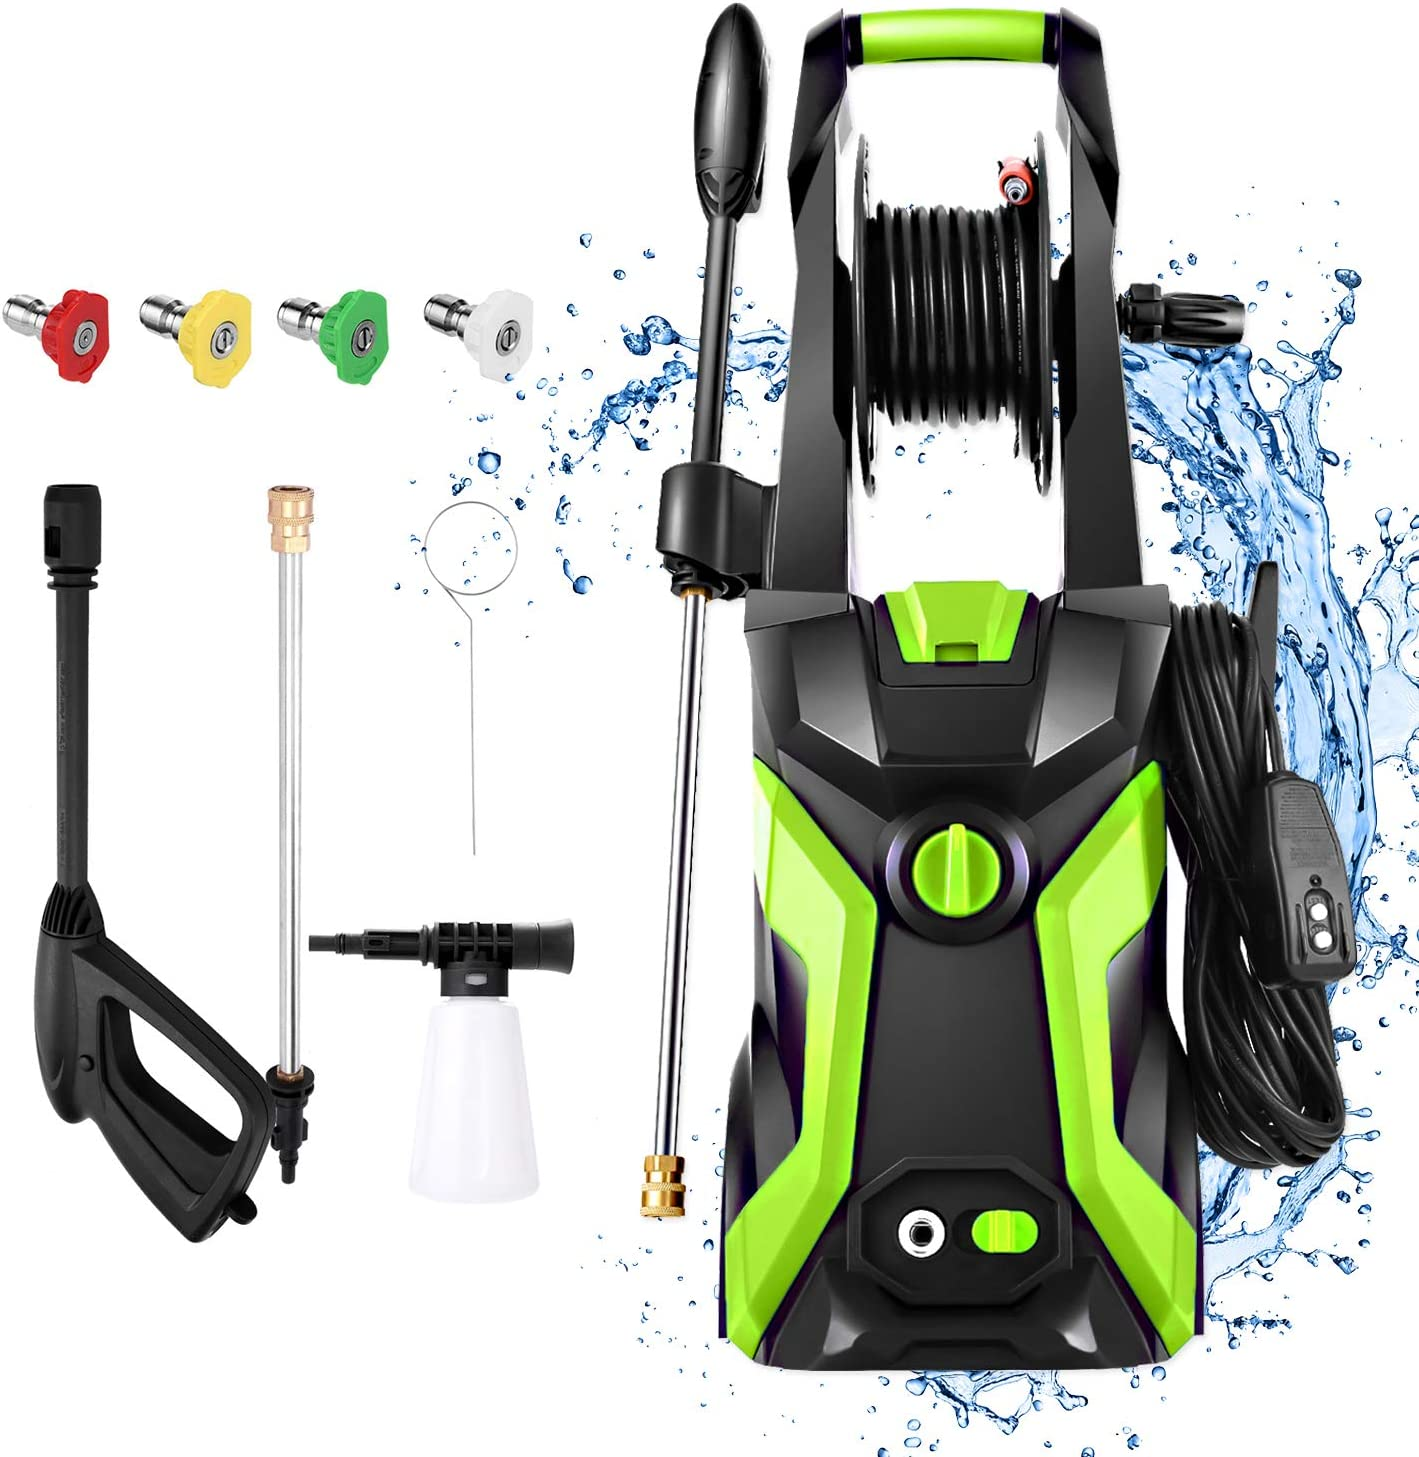 Devo 3500 PSI Pressure Washer, 2.4GPM Electric Power Washer,1800W High Pressure Cleaner Machine with 4 Nozzles & Hose, Cleans Cars/Fences/Patios/Driveways (Green)